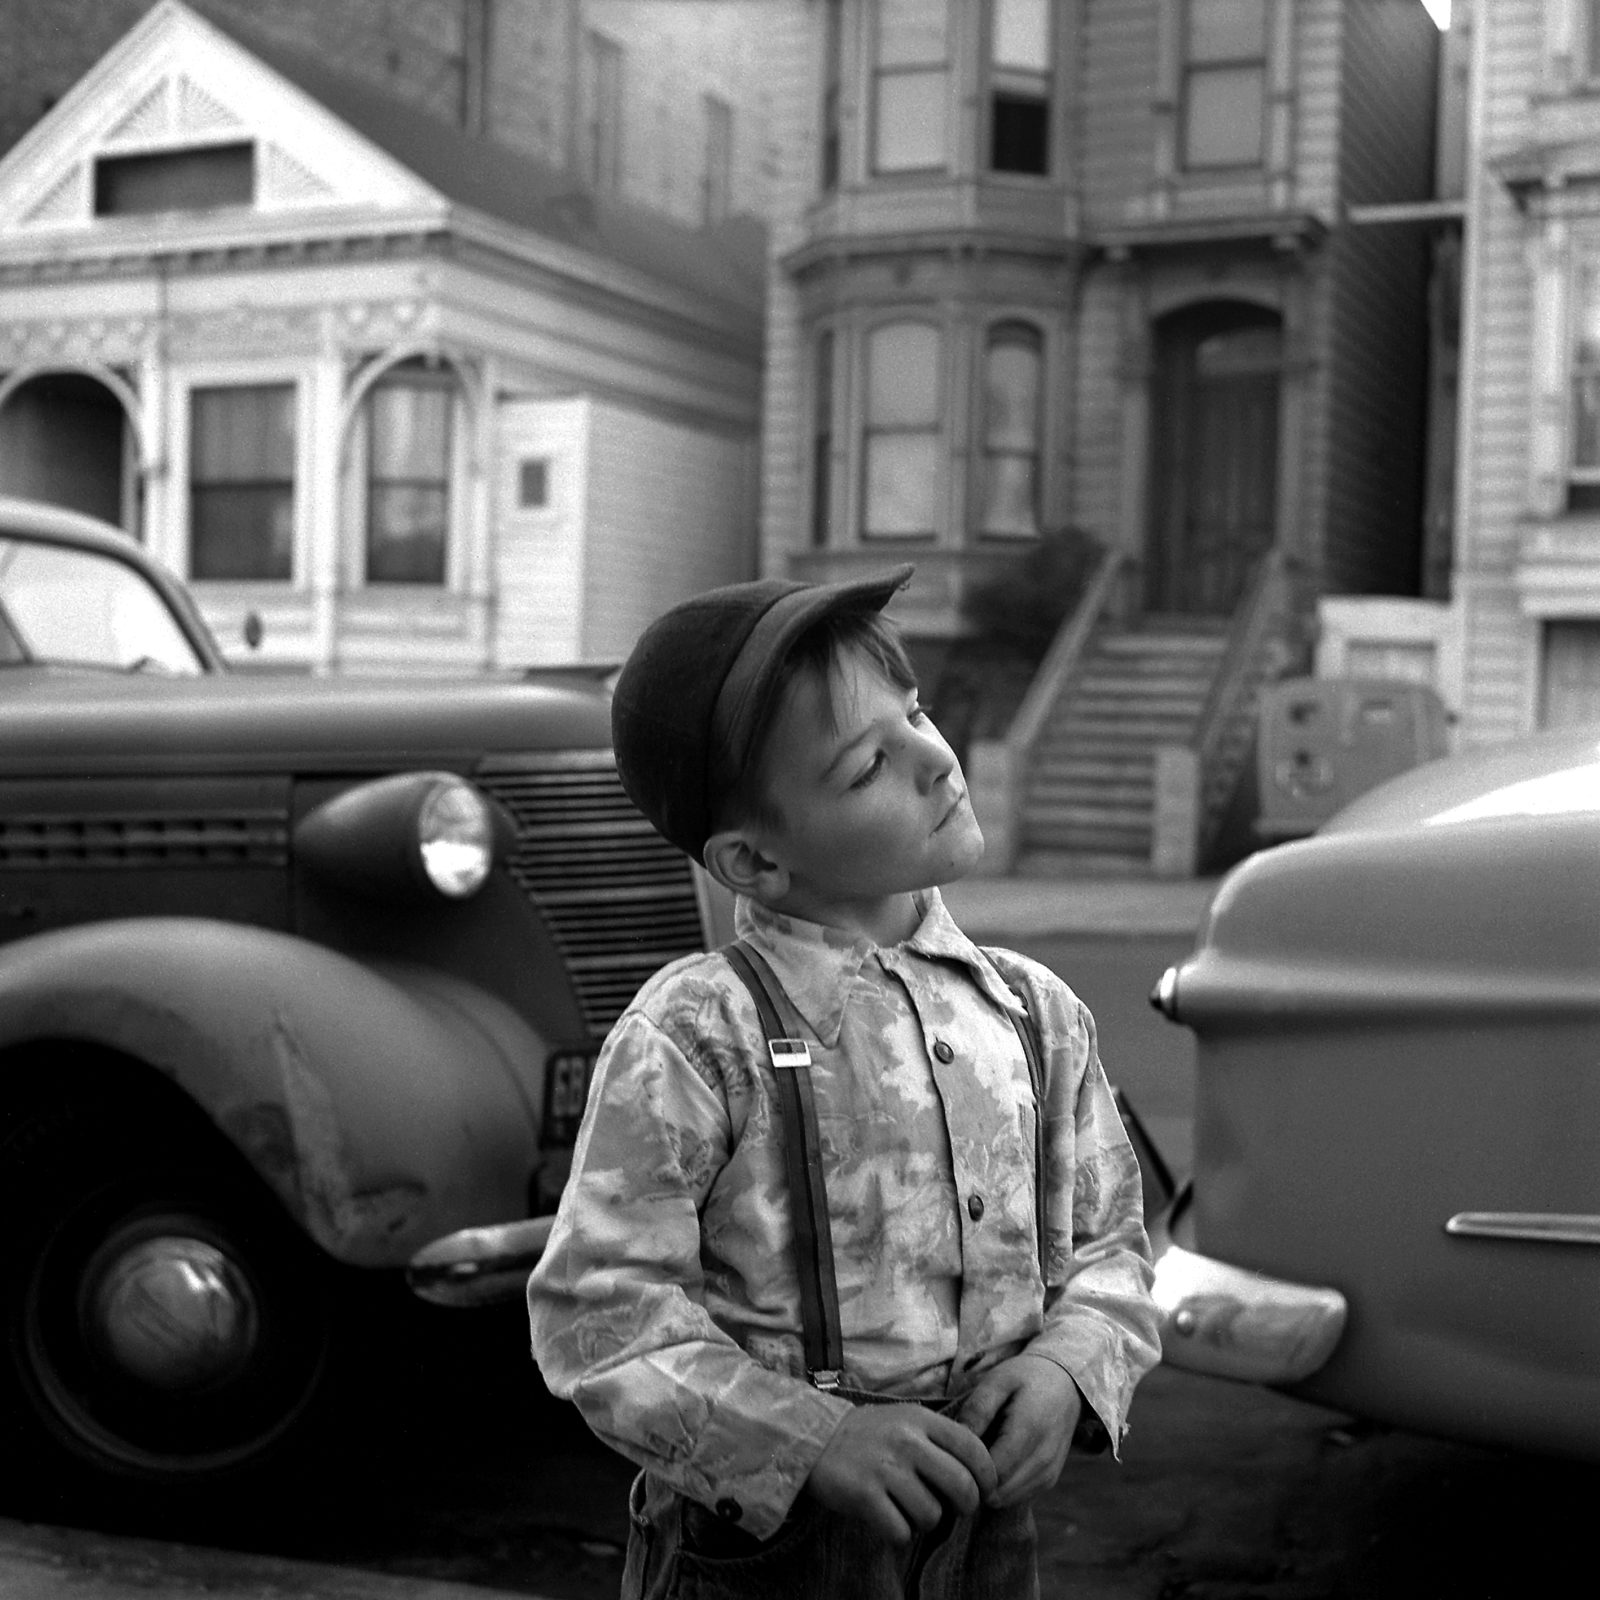 THE GOLDEN DECADE - Photography at the California School of Fine Arts, 1945-1955